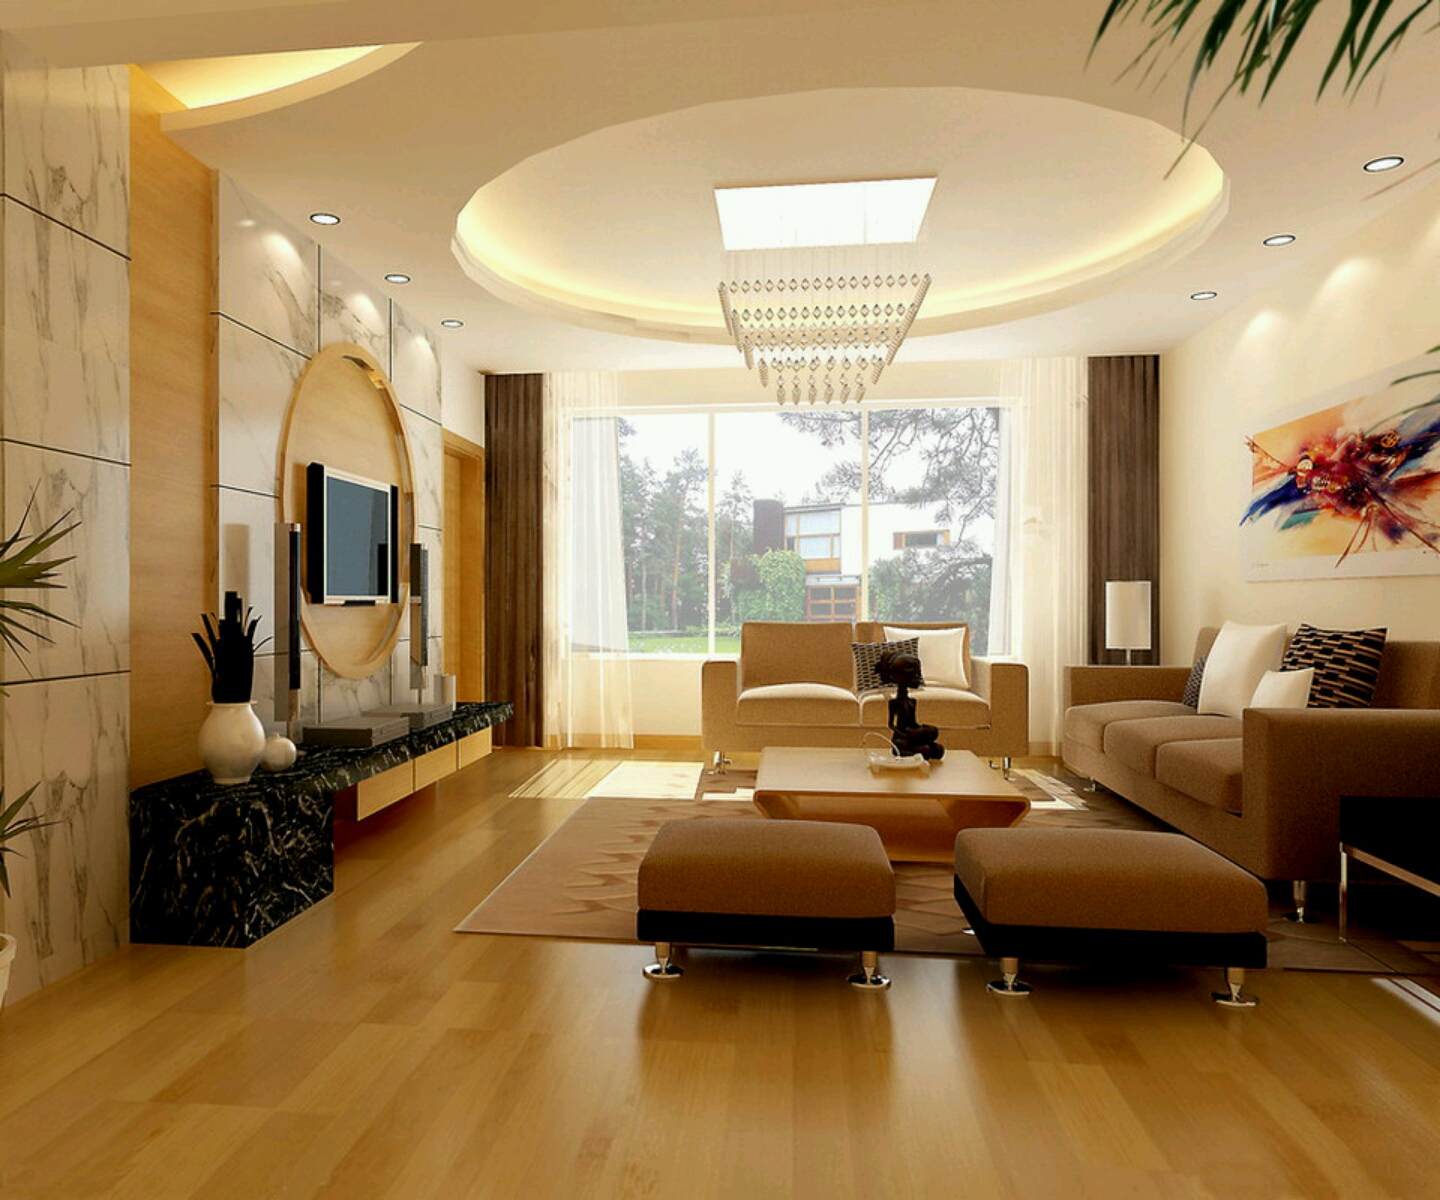 Modern interior decoration living rooms ceiling designs Interior sitting room